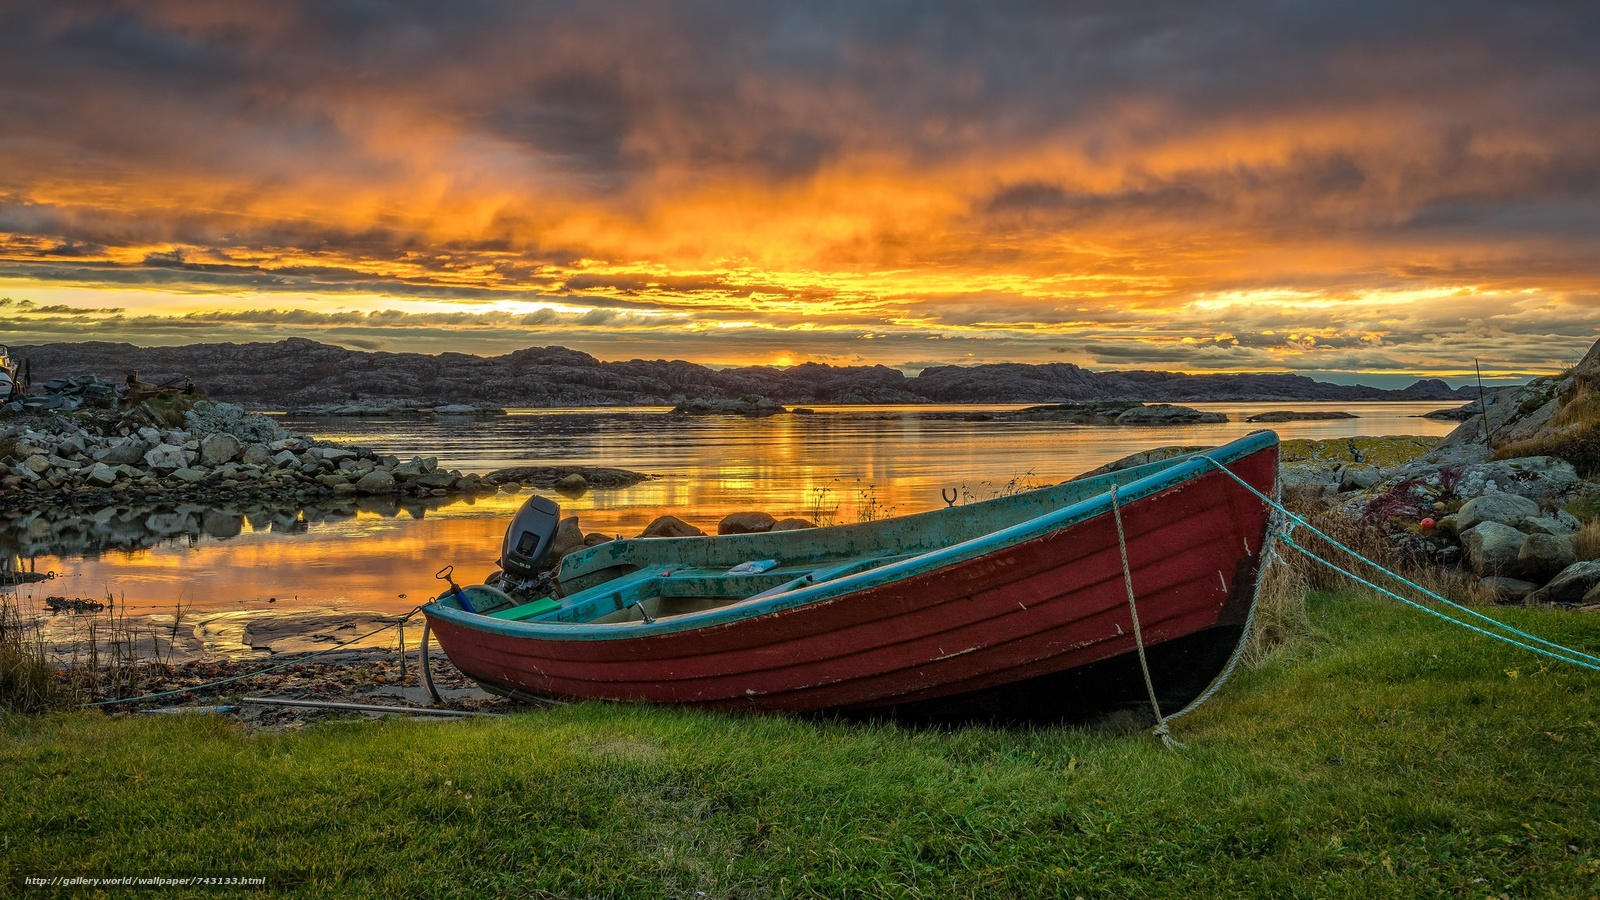 landscape, a boat, boats, water, nature, peace, relaxation, River, lake, sunset, Coast, grass, stones, bright, sky, clouds